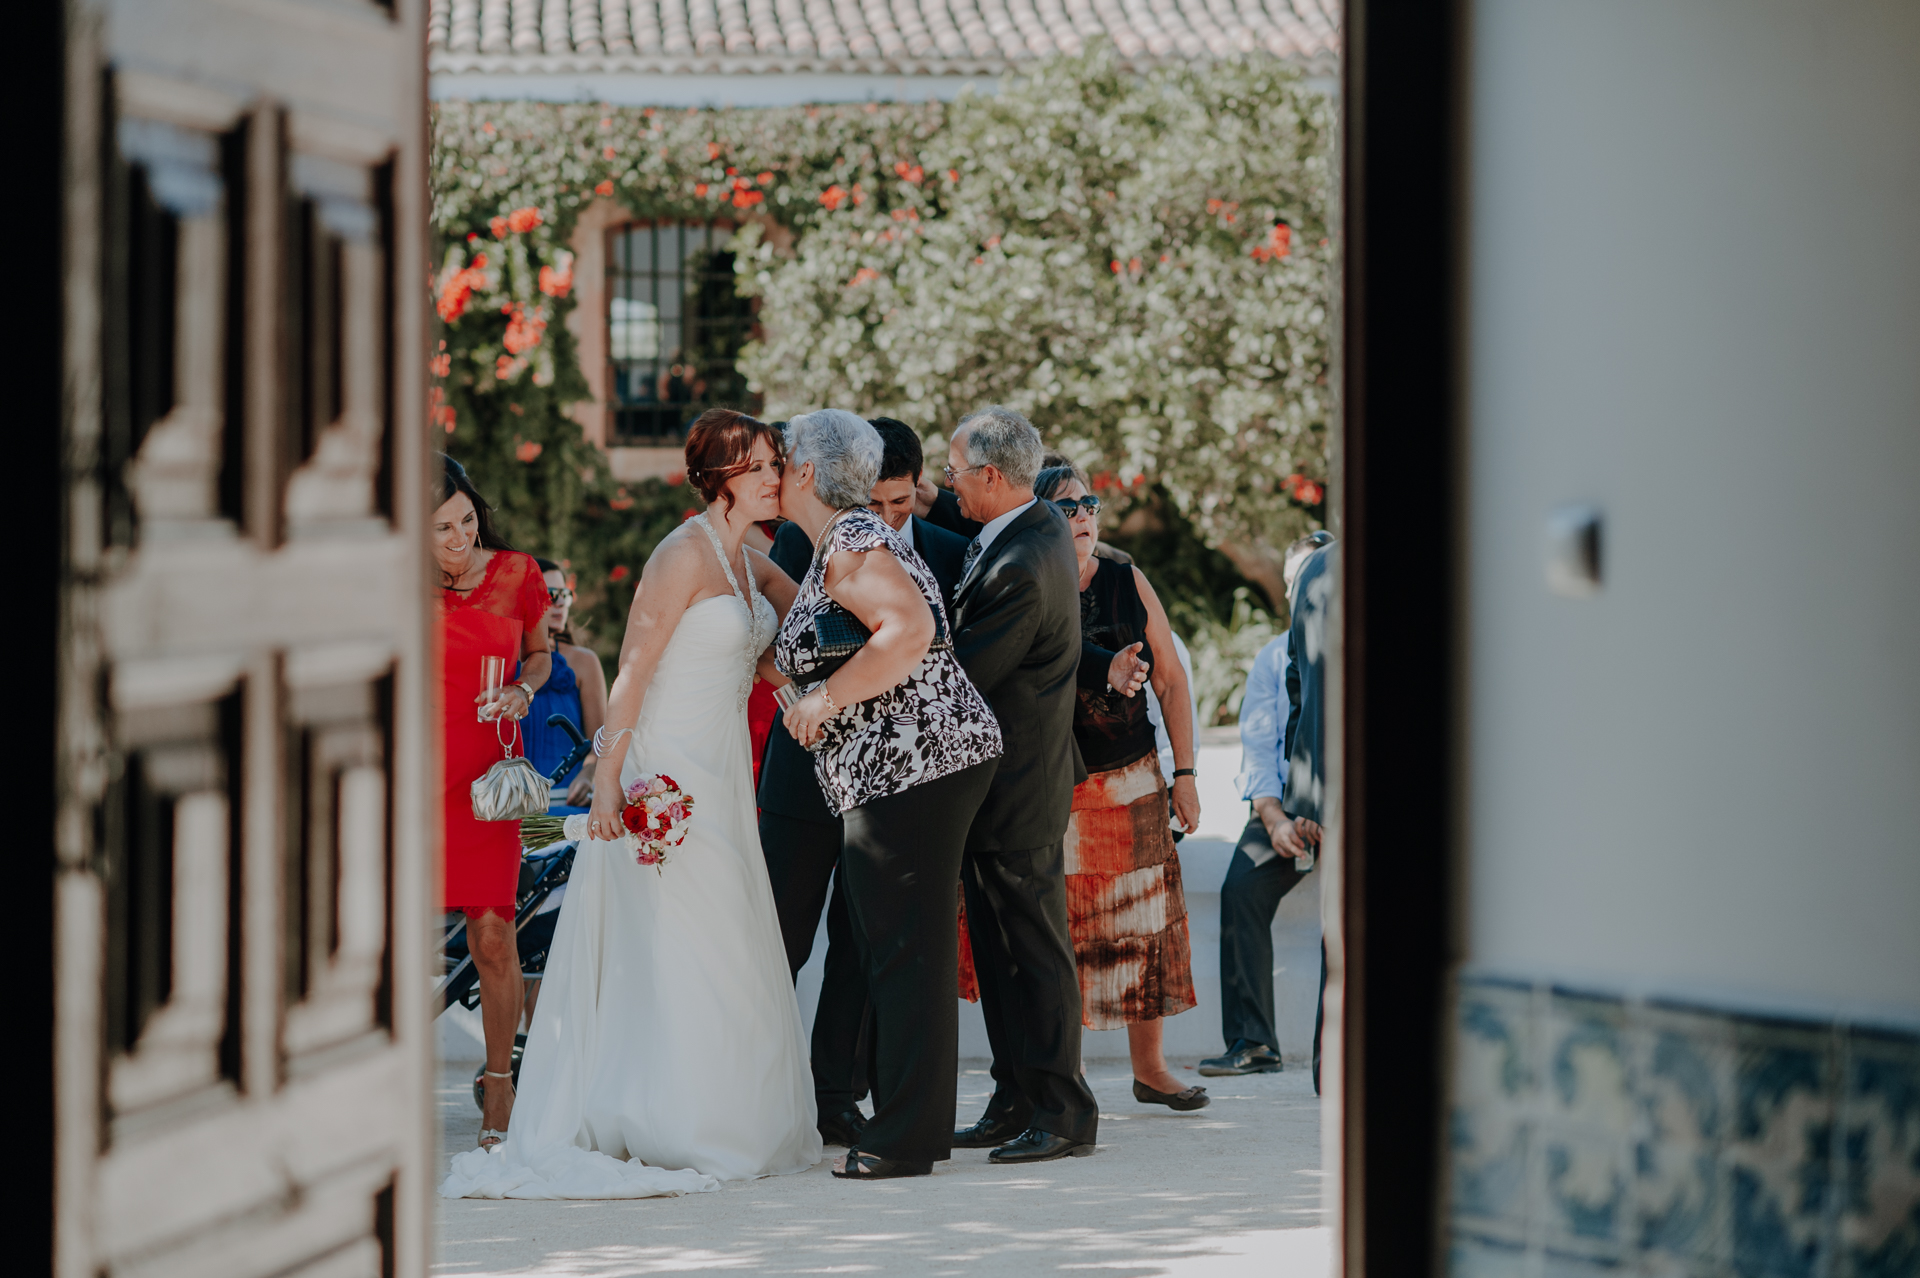 Wedding Ceremony Venue Quinta do Valle do Riacho Pic | The bride greets a wedding guest with a kiss